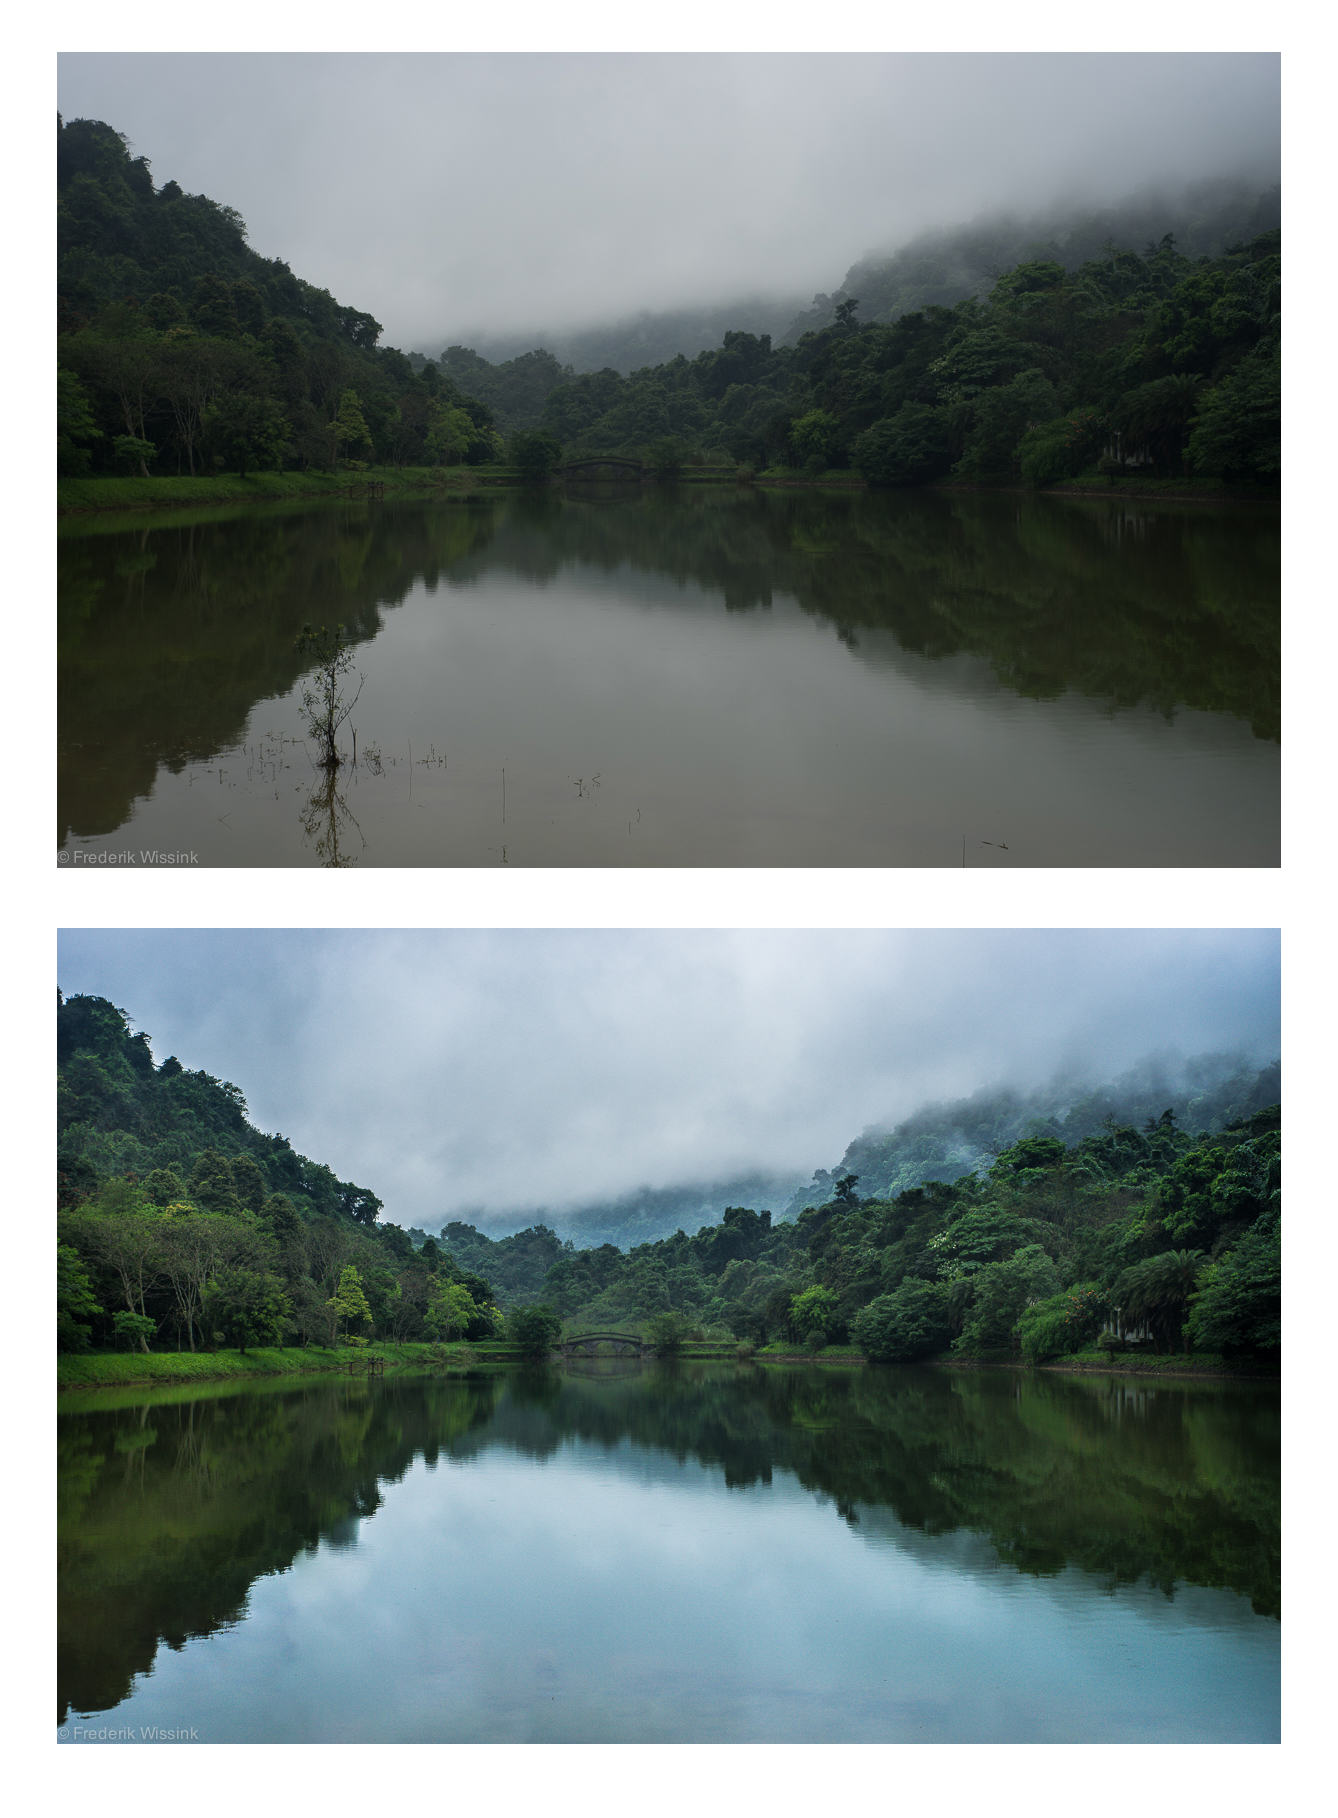 mai-chau-lake-comparison